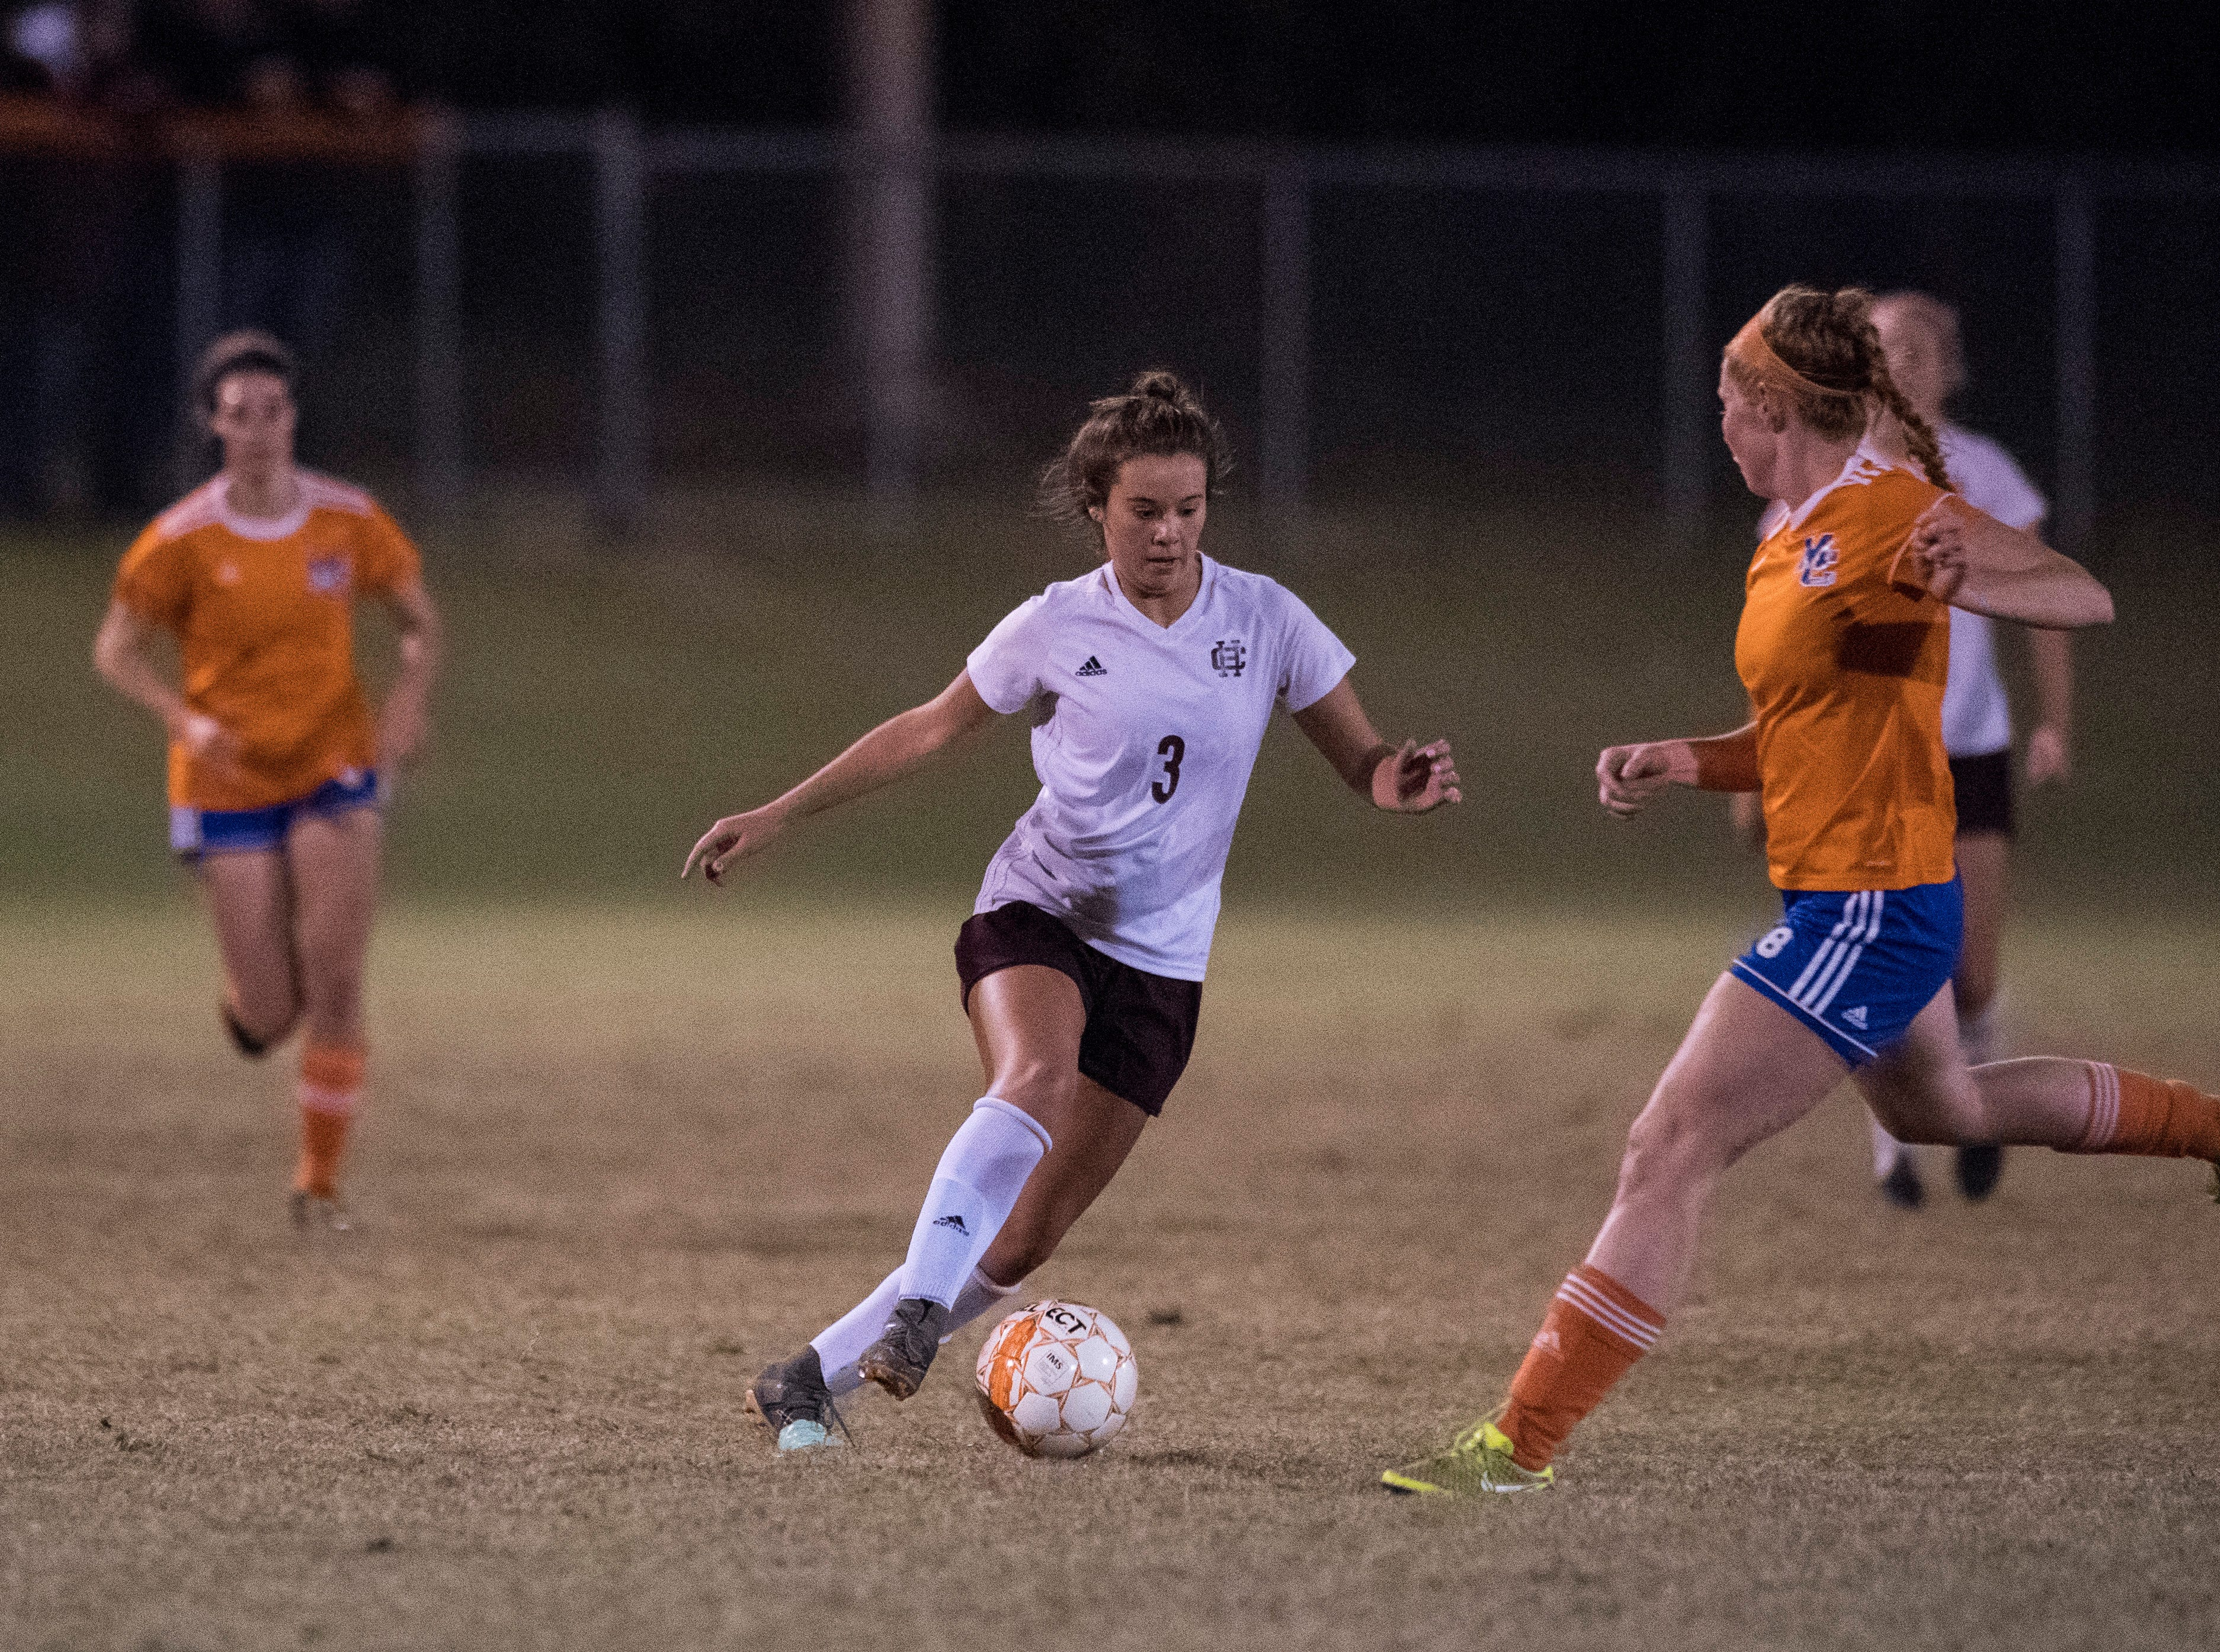 Henderson's Maggie Sauer (3) controls the ball during the first round of the KHSAA state tournament at Marshall County High School Monday, Oct. 23, 2018.